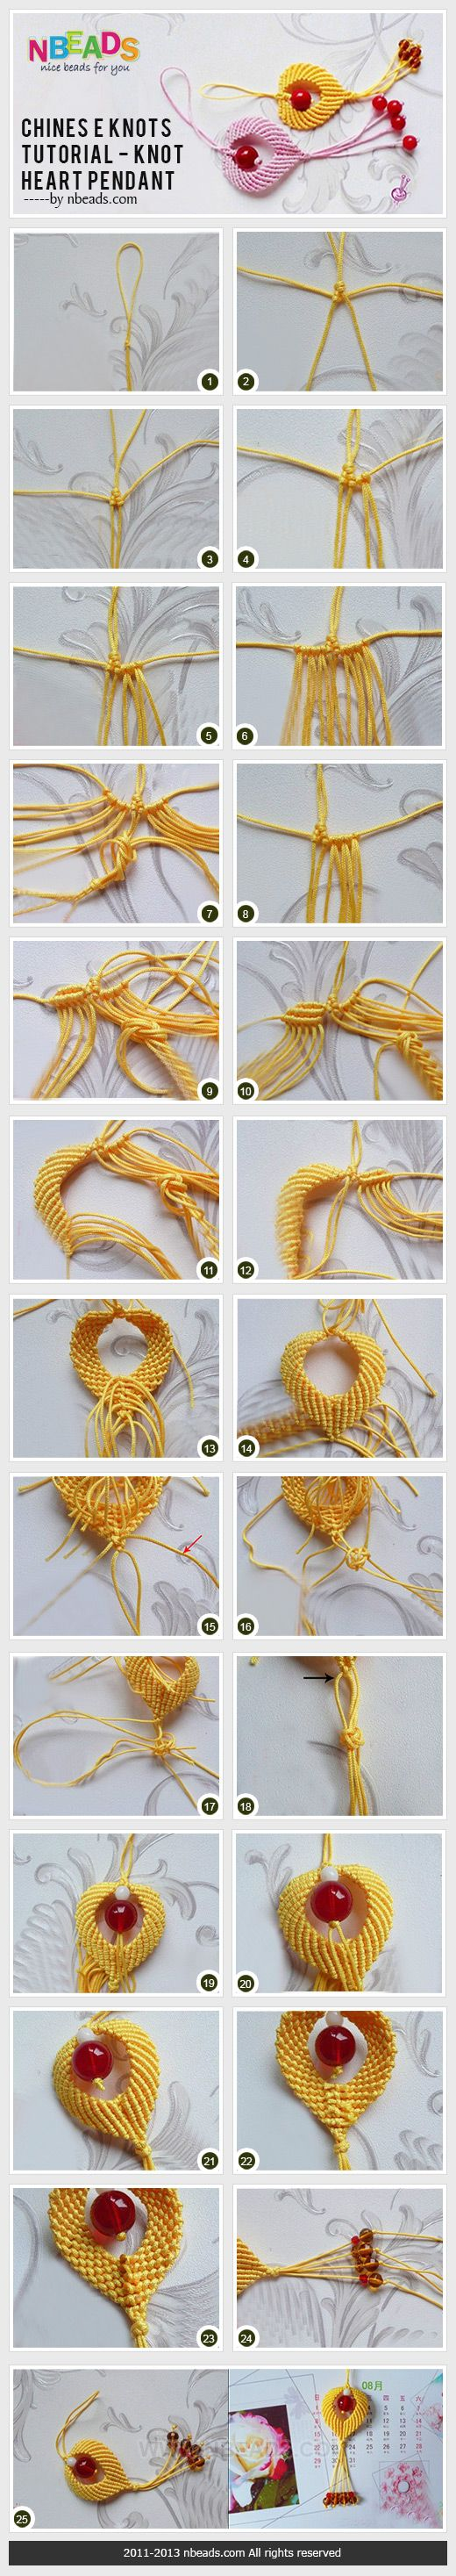 chinese knots tutorial - knot heart pendant